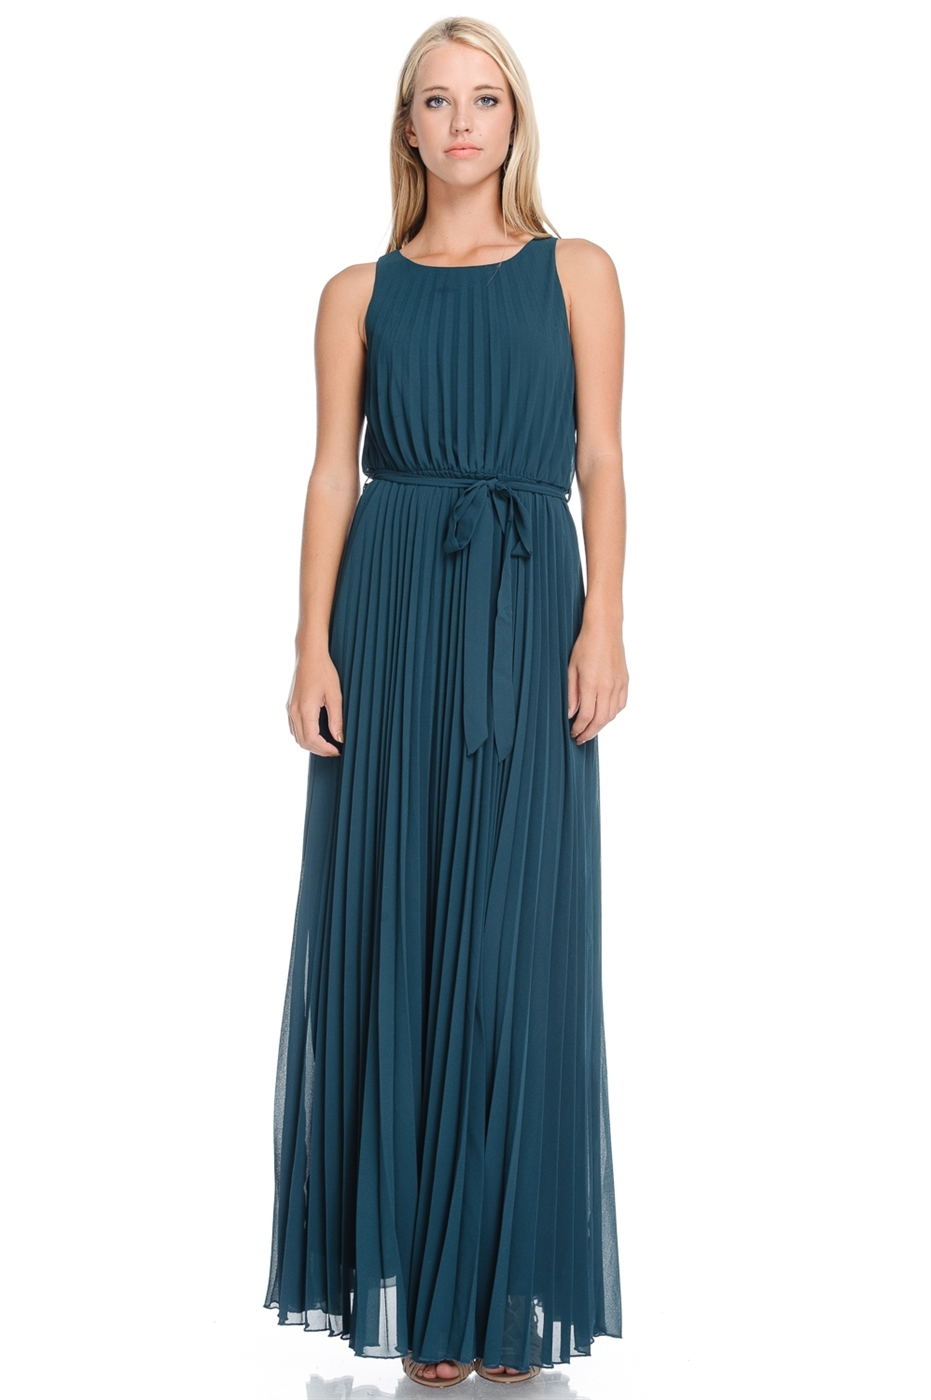 Teal Maxi Pleated Dress - orangeshine.com